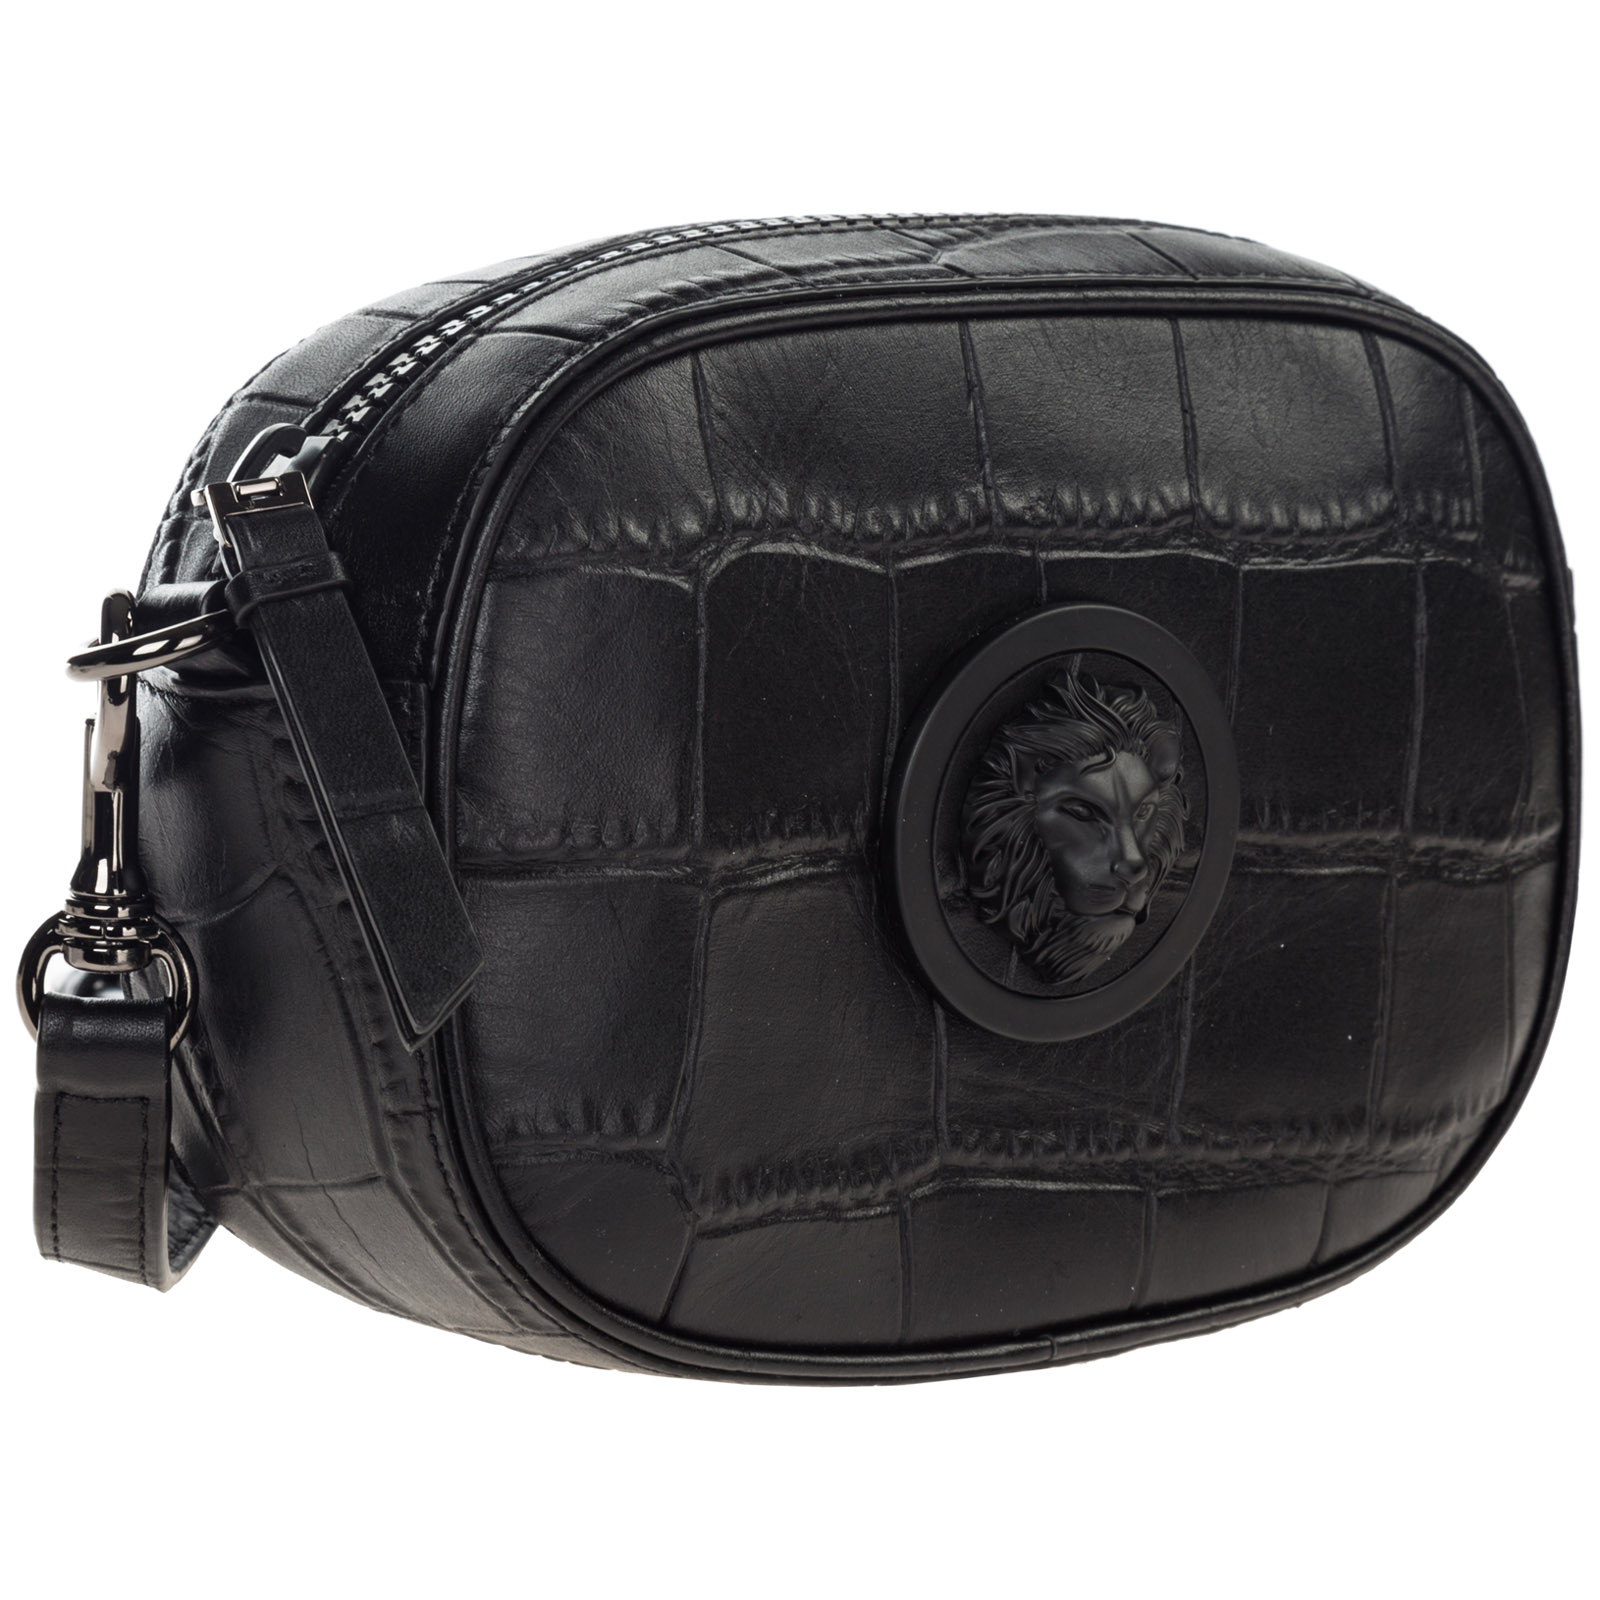 Crossbody bag Versus Versace Lion Head FBD1410-FBCCM F461C black ... 6568dd82ea